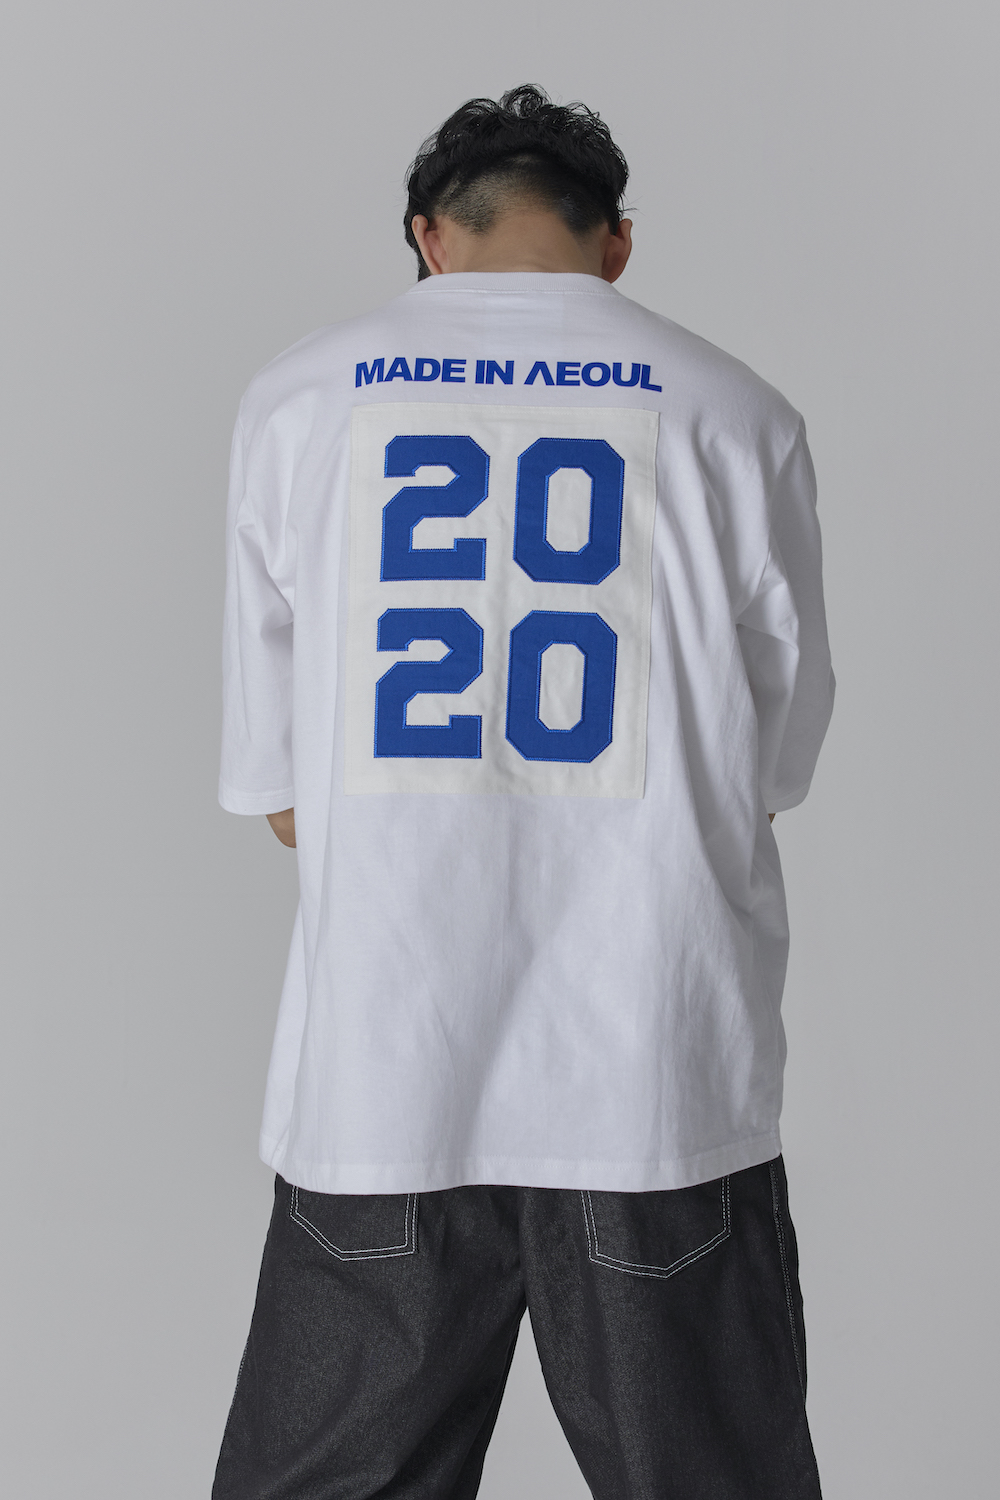 MADE IN SEOUL 2020 T SHIRT WHITE